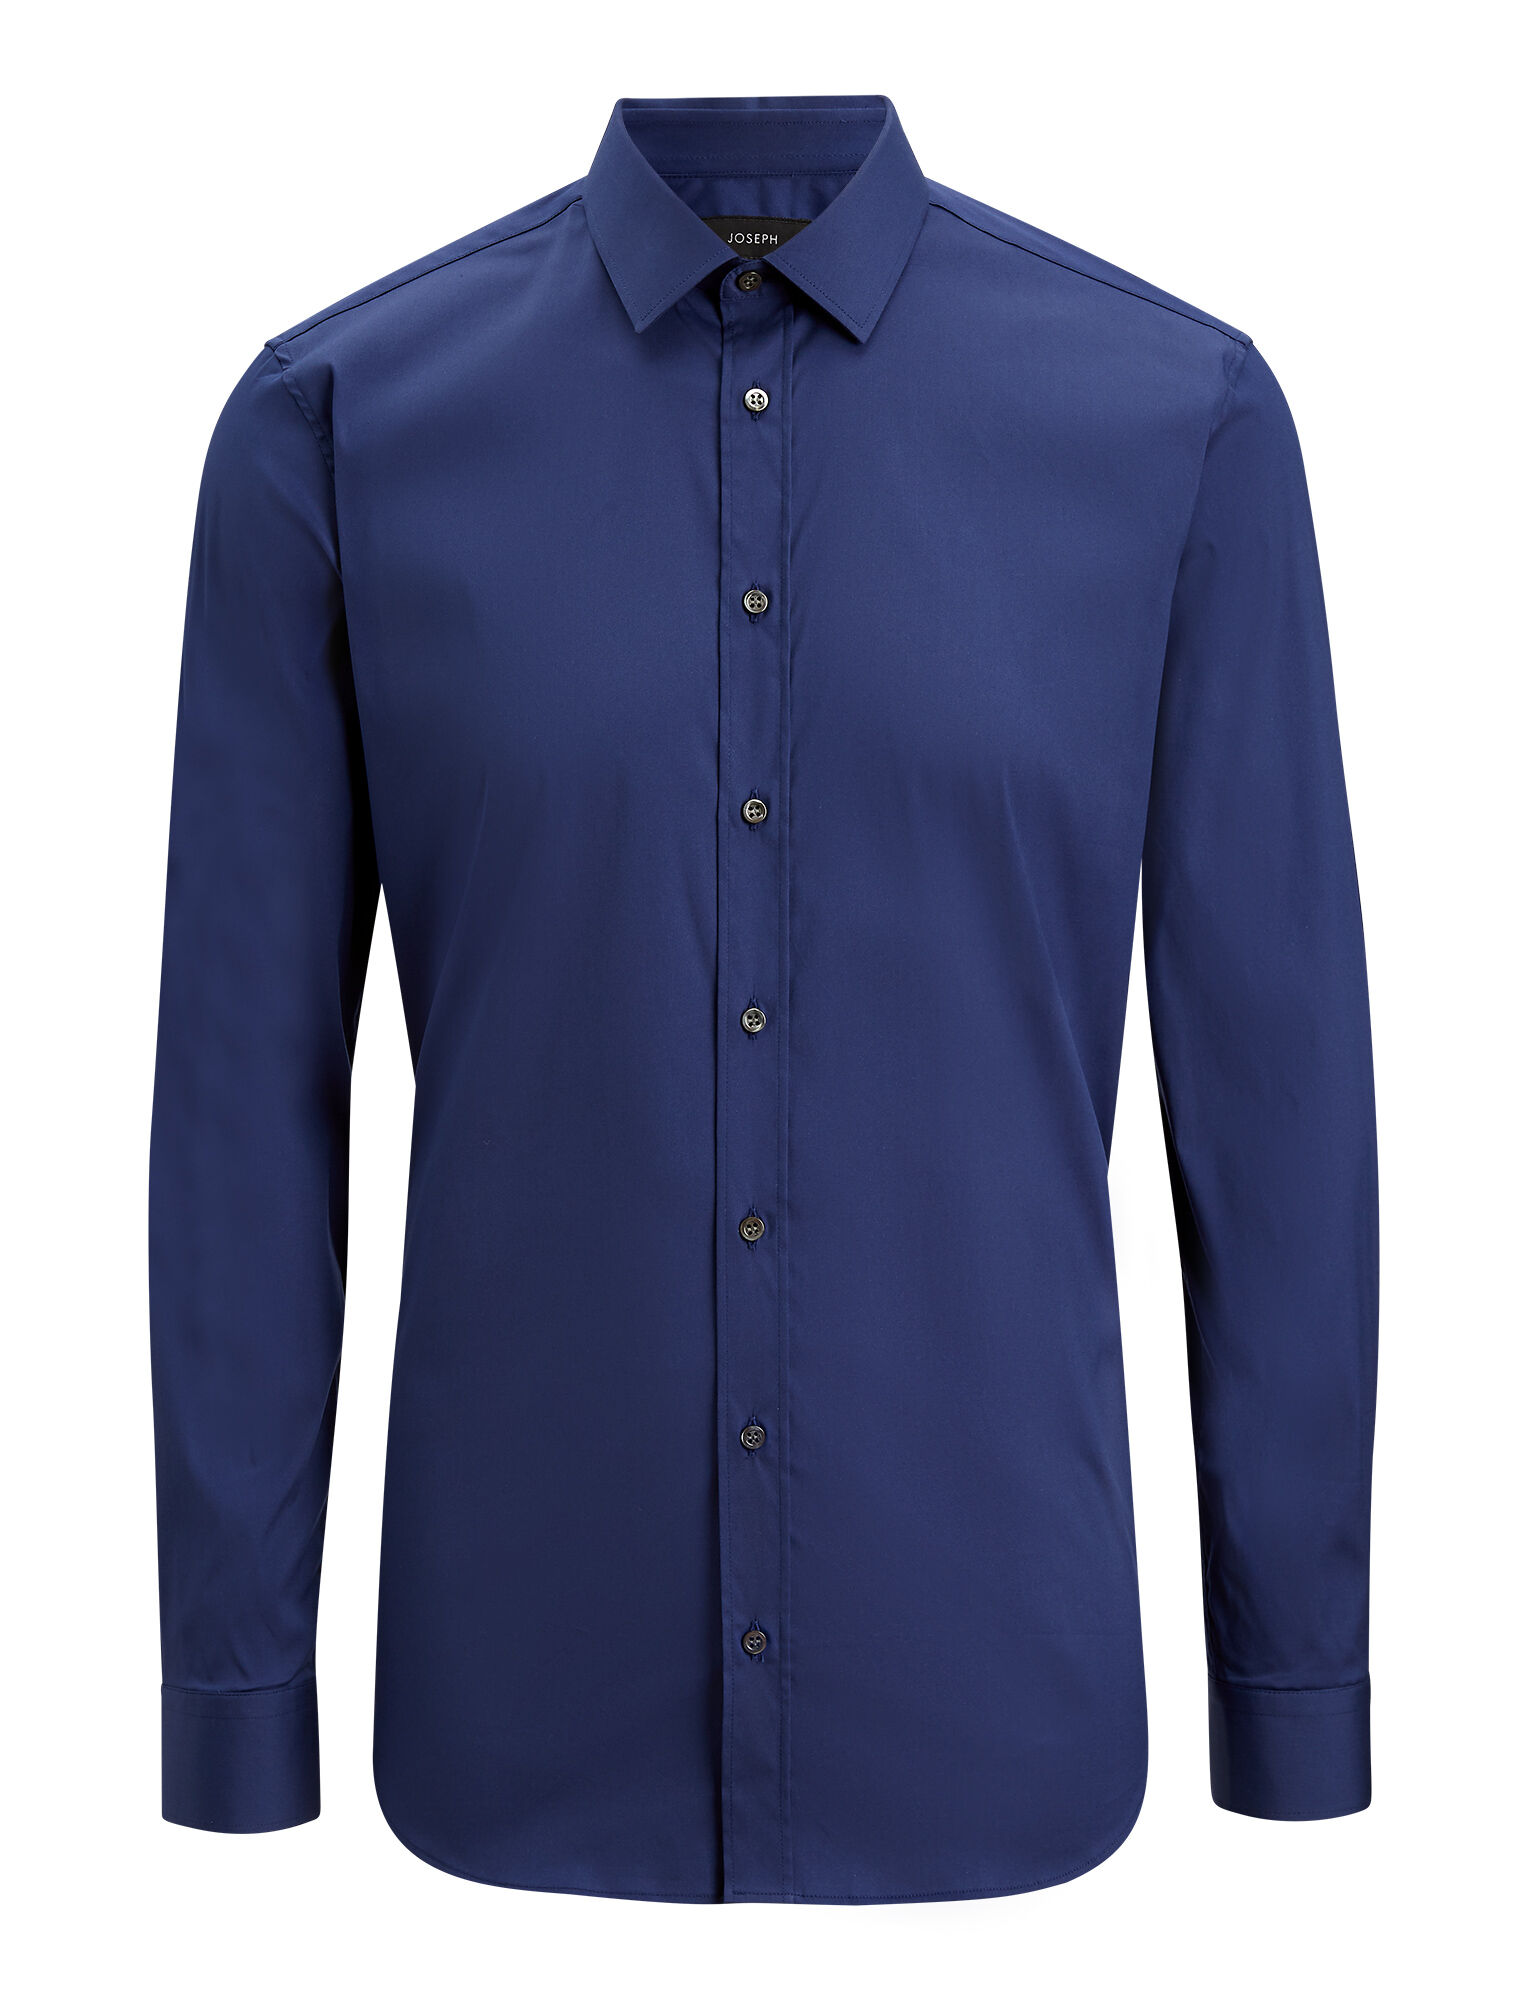 Joseph, Jim Poplin Stretch Shirt, in INDIGO